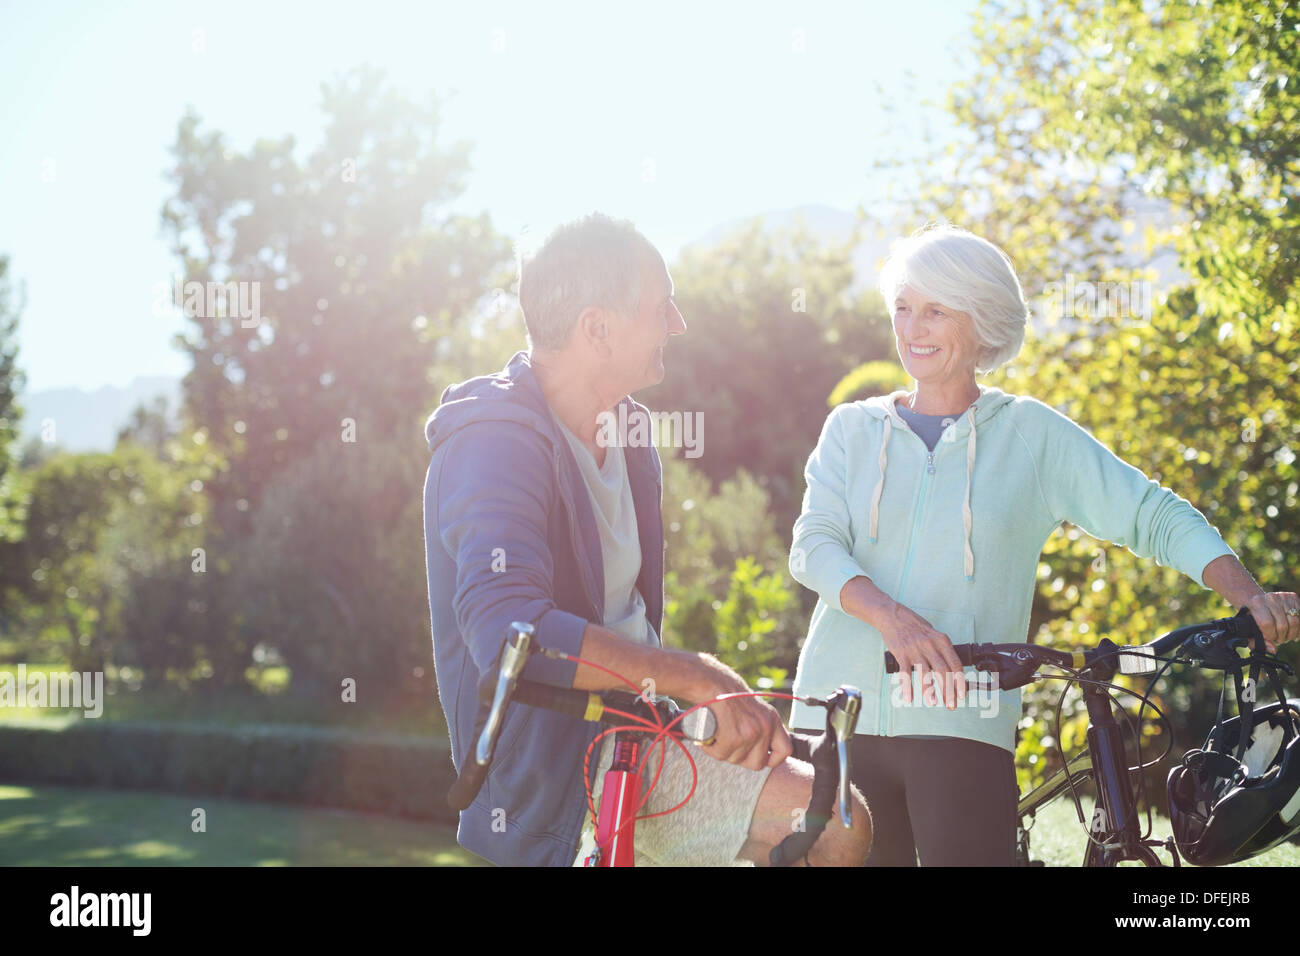 Senior couple with bicycles in park Photo Stock